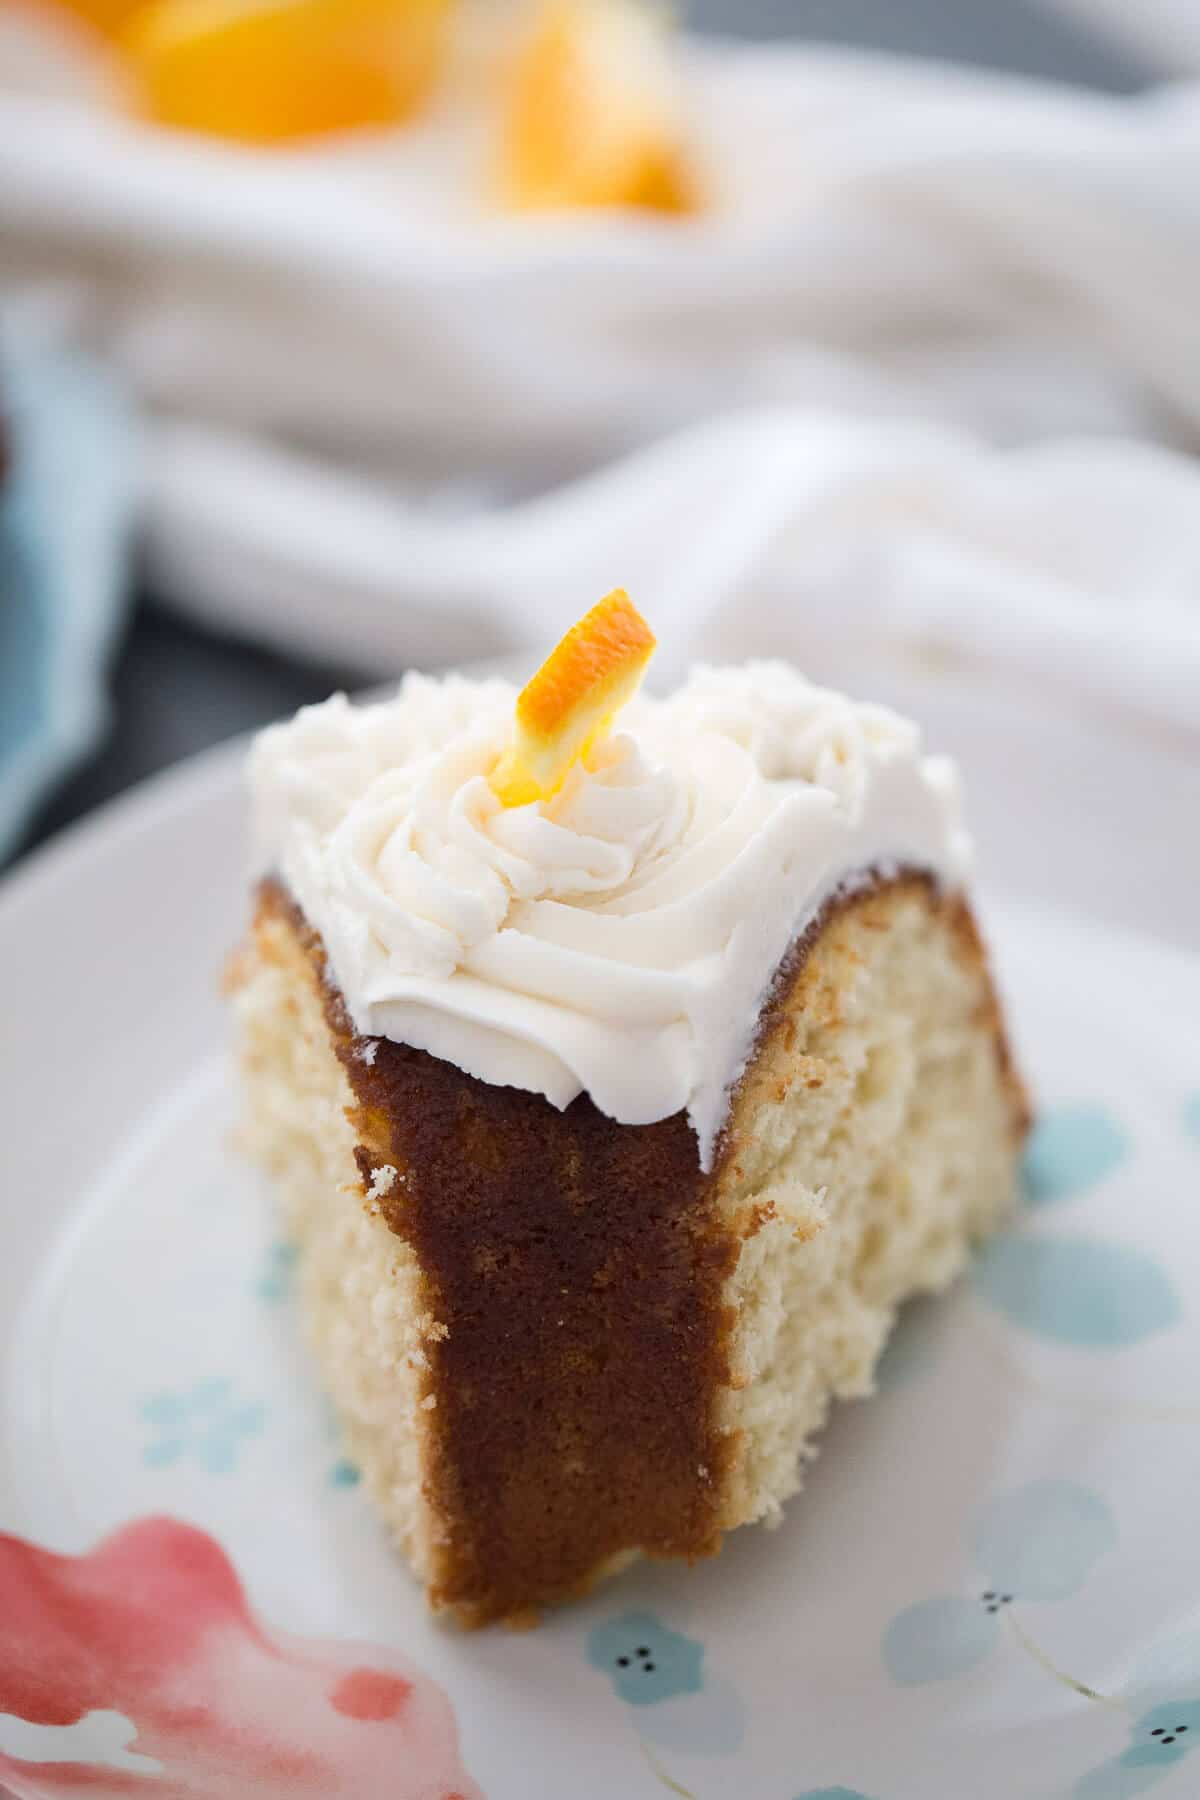 This simple bundt cake recipe is made to taste just like a mimosa cocktail; desserts with champagne are always good!